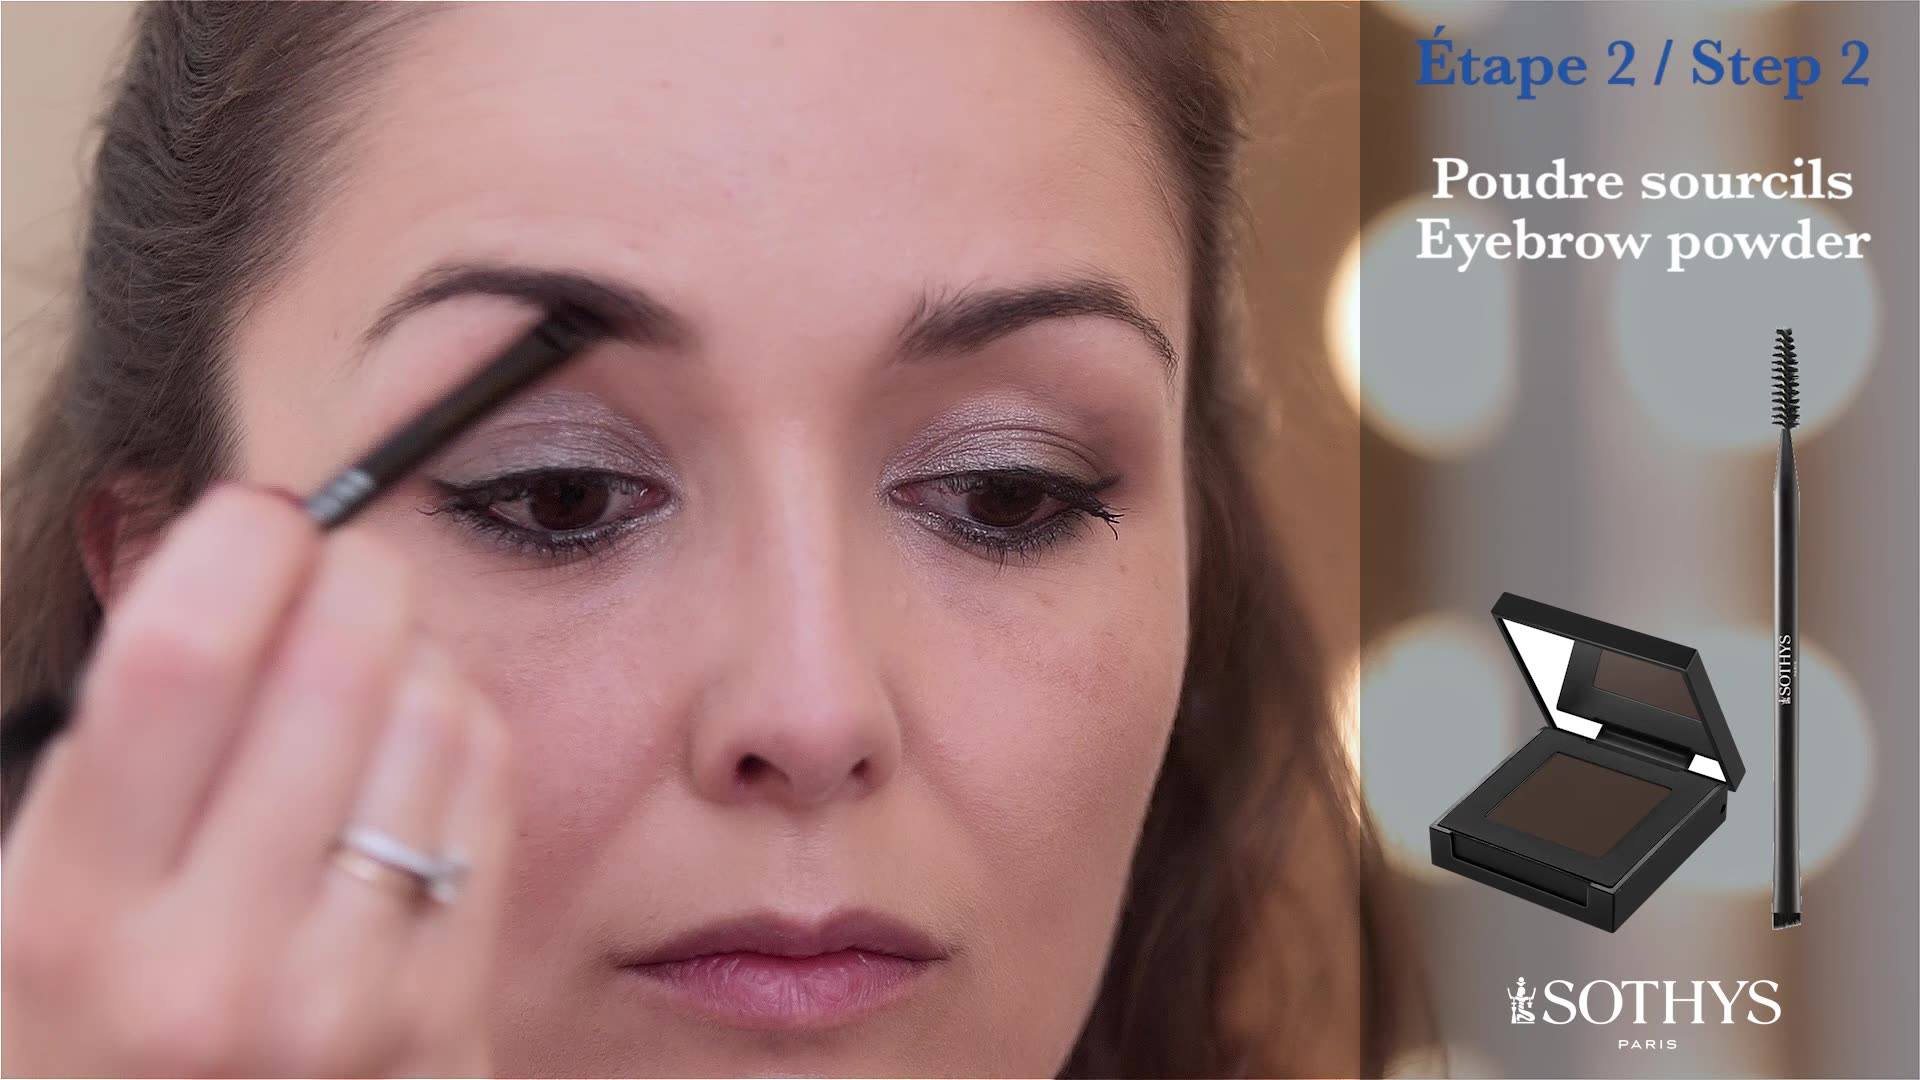 [Make-up Advice] Sothys Paris Want to learn how to perfect your eyebrows when applying your make-up?  Check out the Sothys video for advice on how to shape your eyebrows in 2 steps!  Find out more about our make-up products for your eyes at: ➡️ www.s